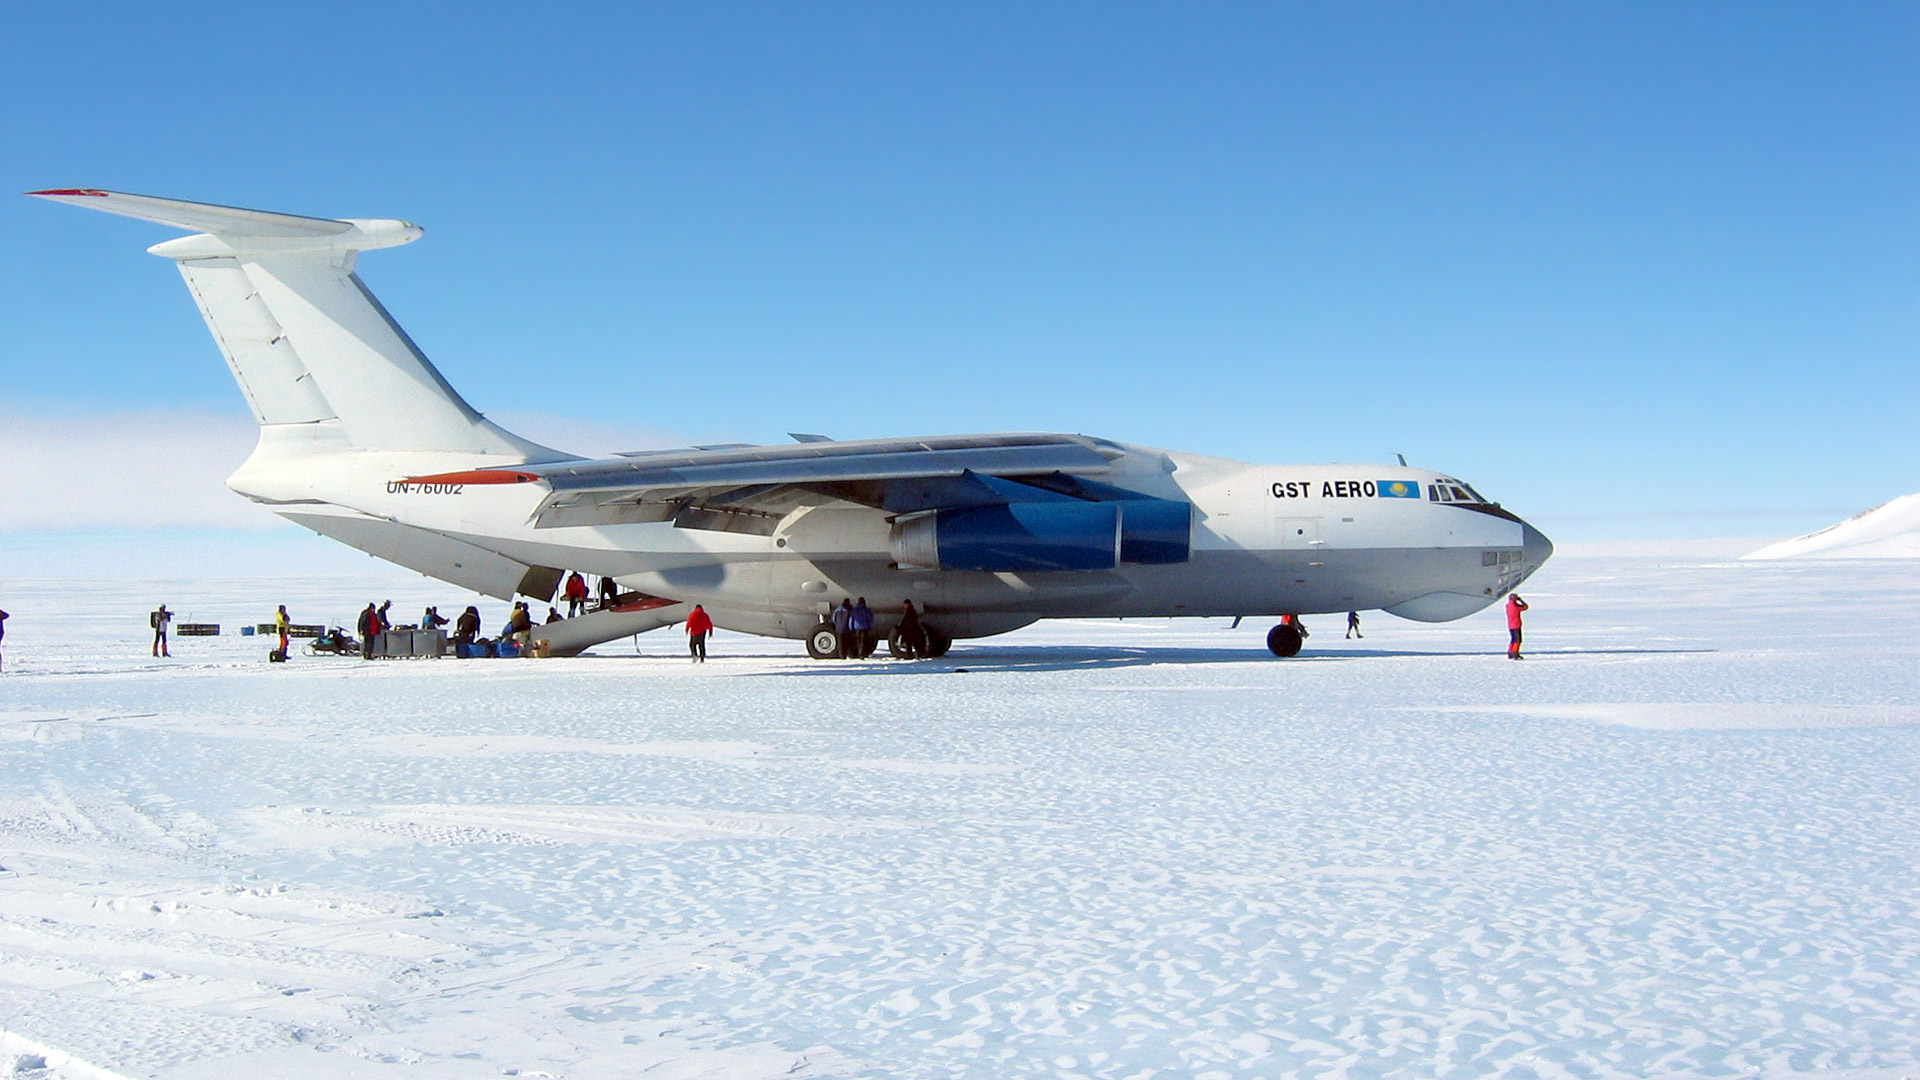 The Vinson team is hoping to be on the big IL 76 soon (Phil Ershler)